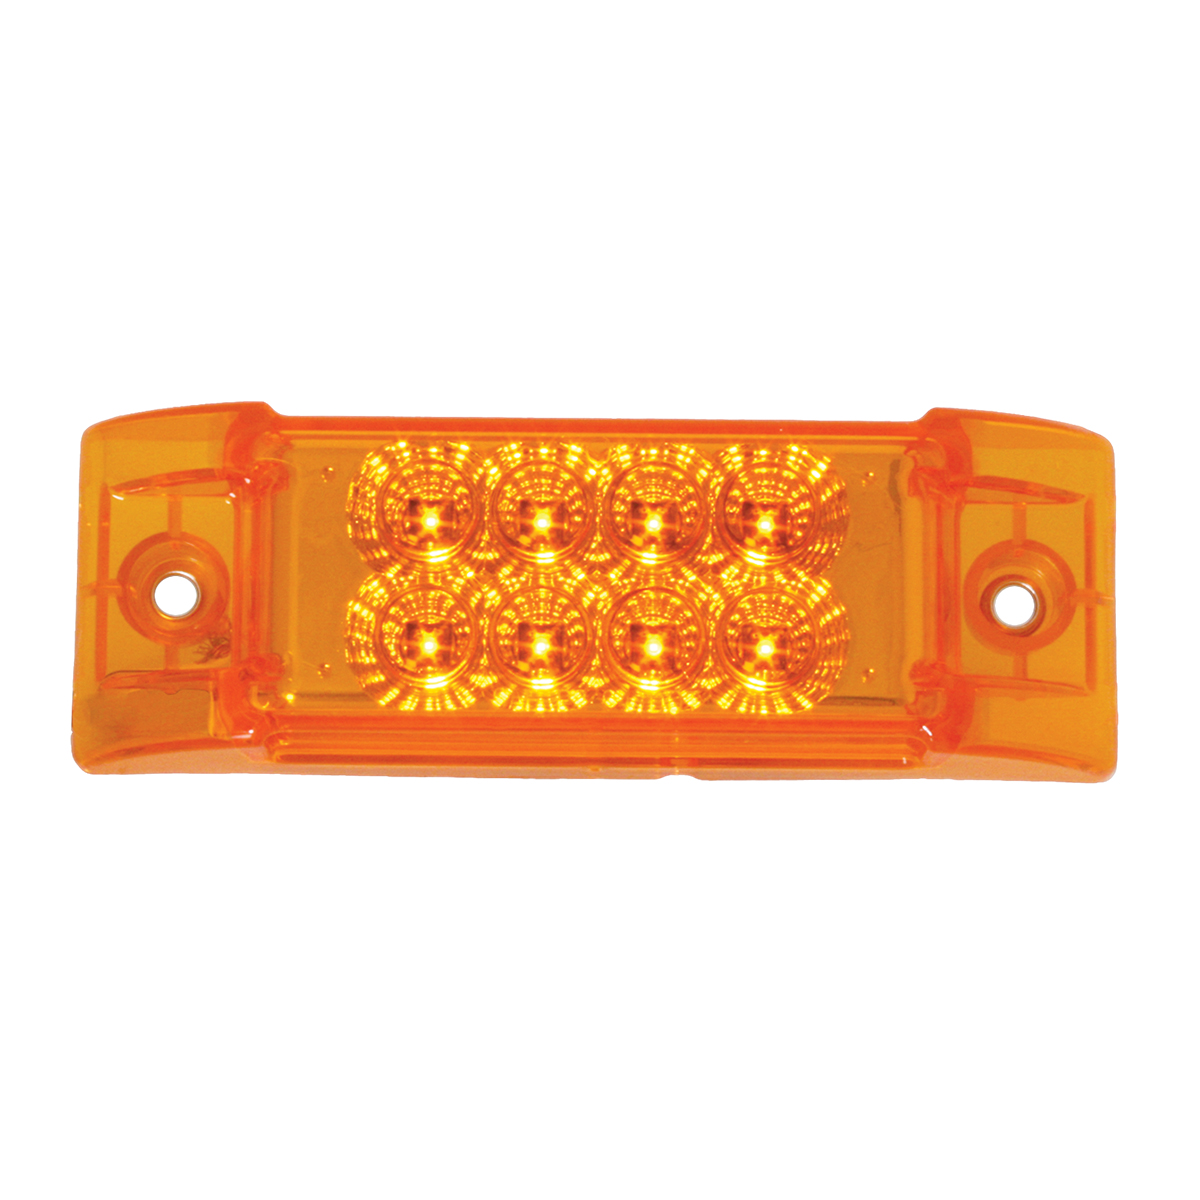 77660 Rectangular Spyder LED Marker Light in Amber/Amber